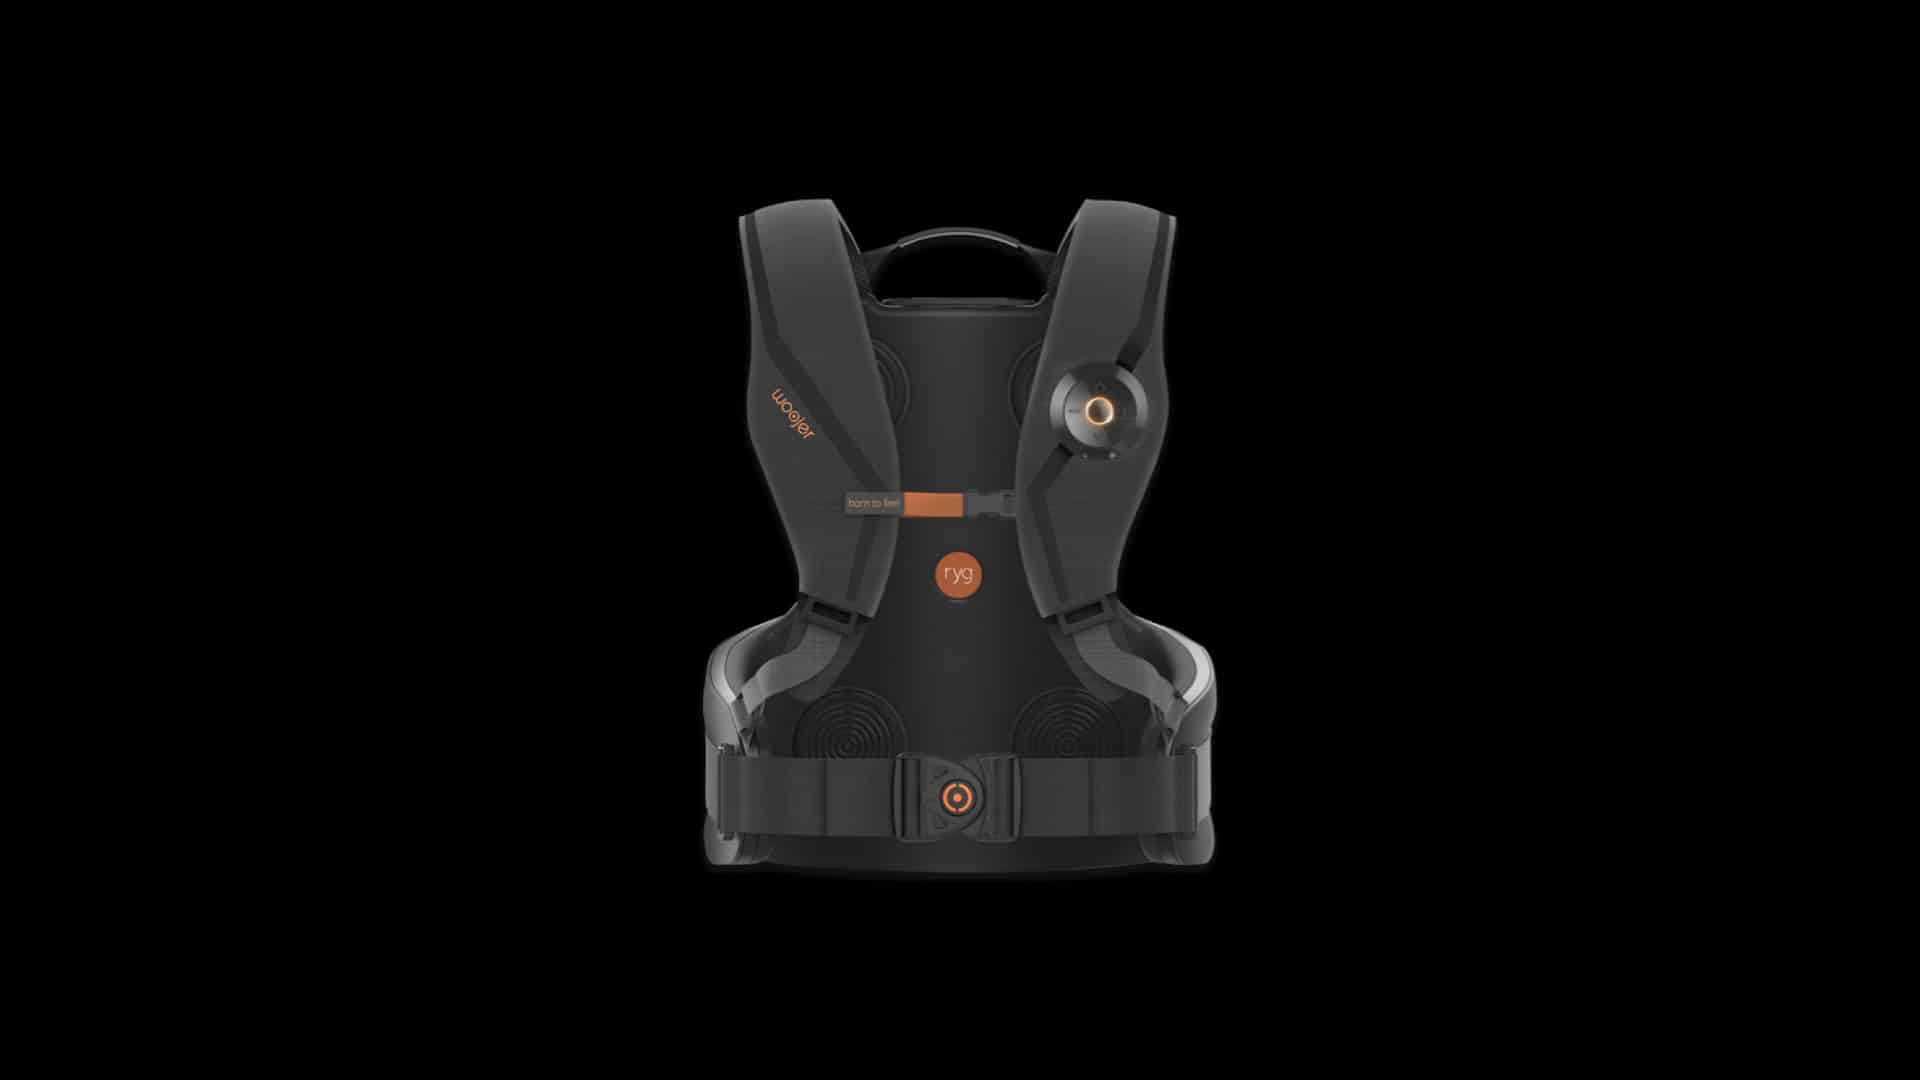 Ryg Haptic Vest will let you feel VR experiences